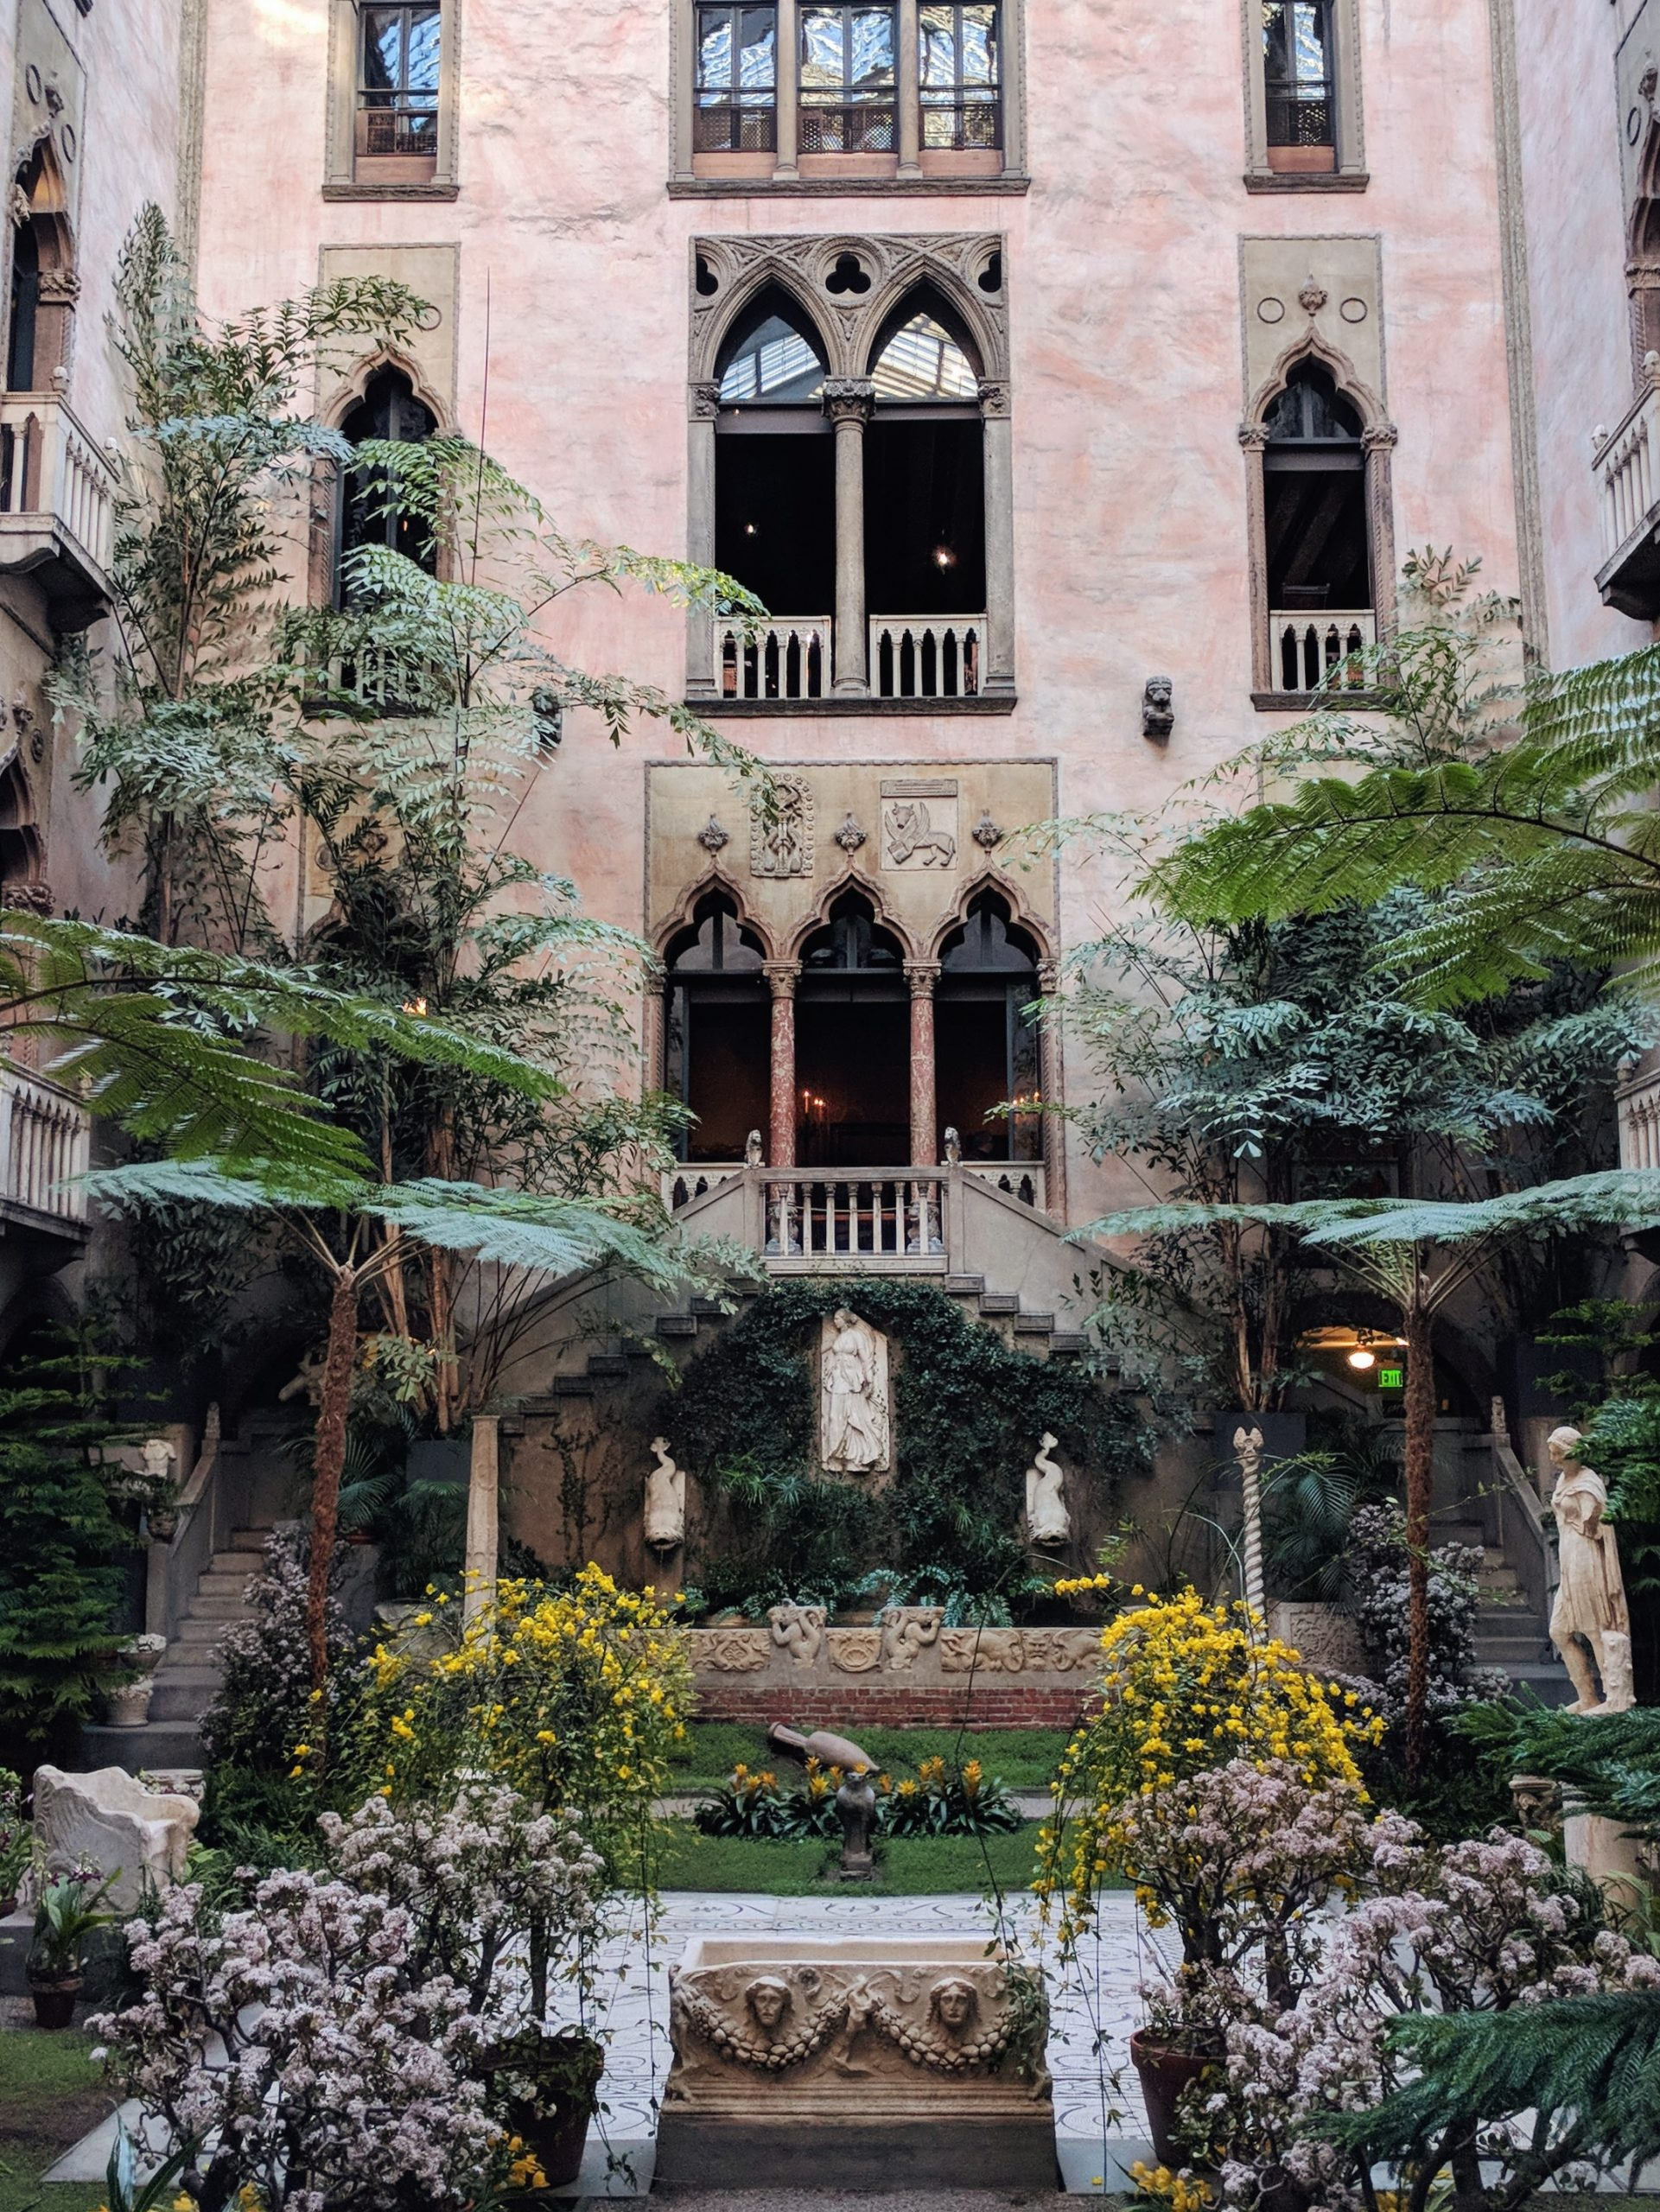 Isabella Stewart Gardner museum courtyard with lush green trees and plants